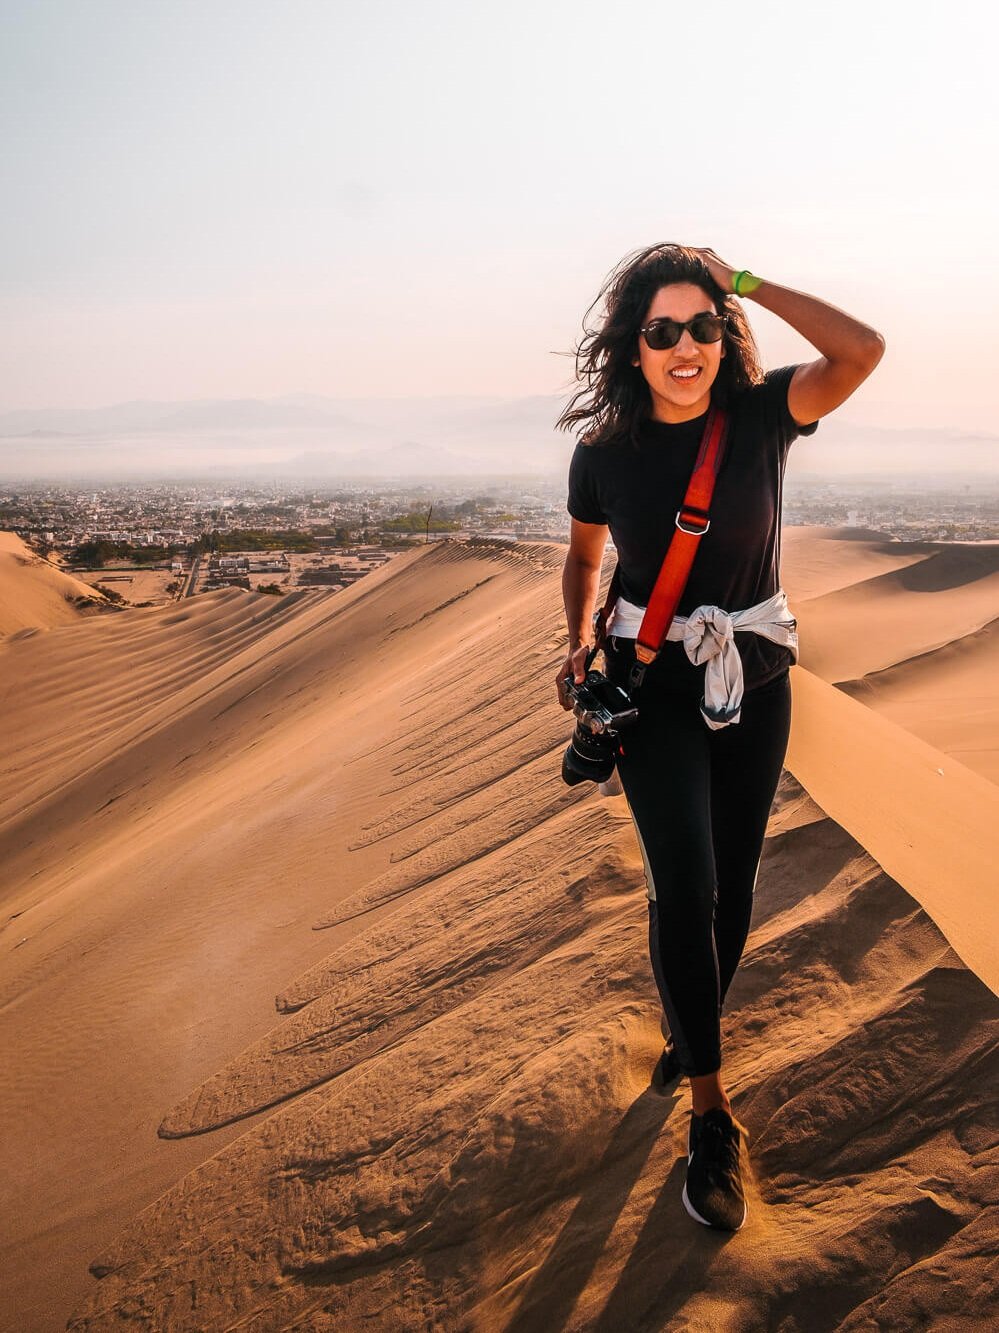 Learn more about Natasha Lequepeys - travel photographer and content creator for And Then I Met Yoko